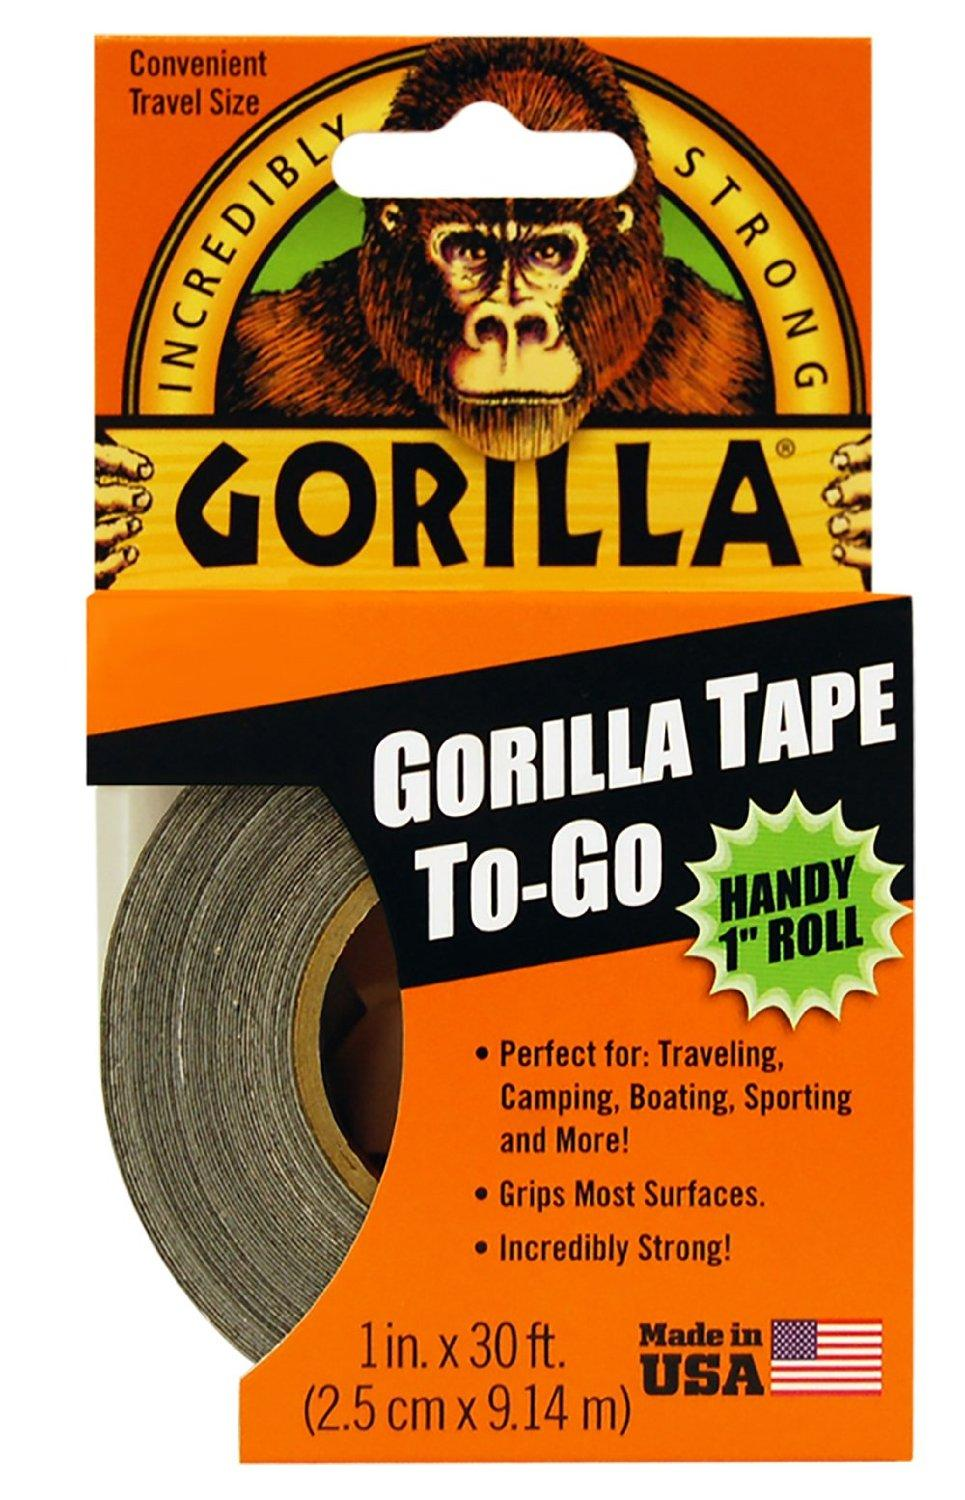 #1 Best Seller! $2.97 Gorilla Tape To-Go